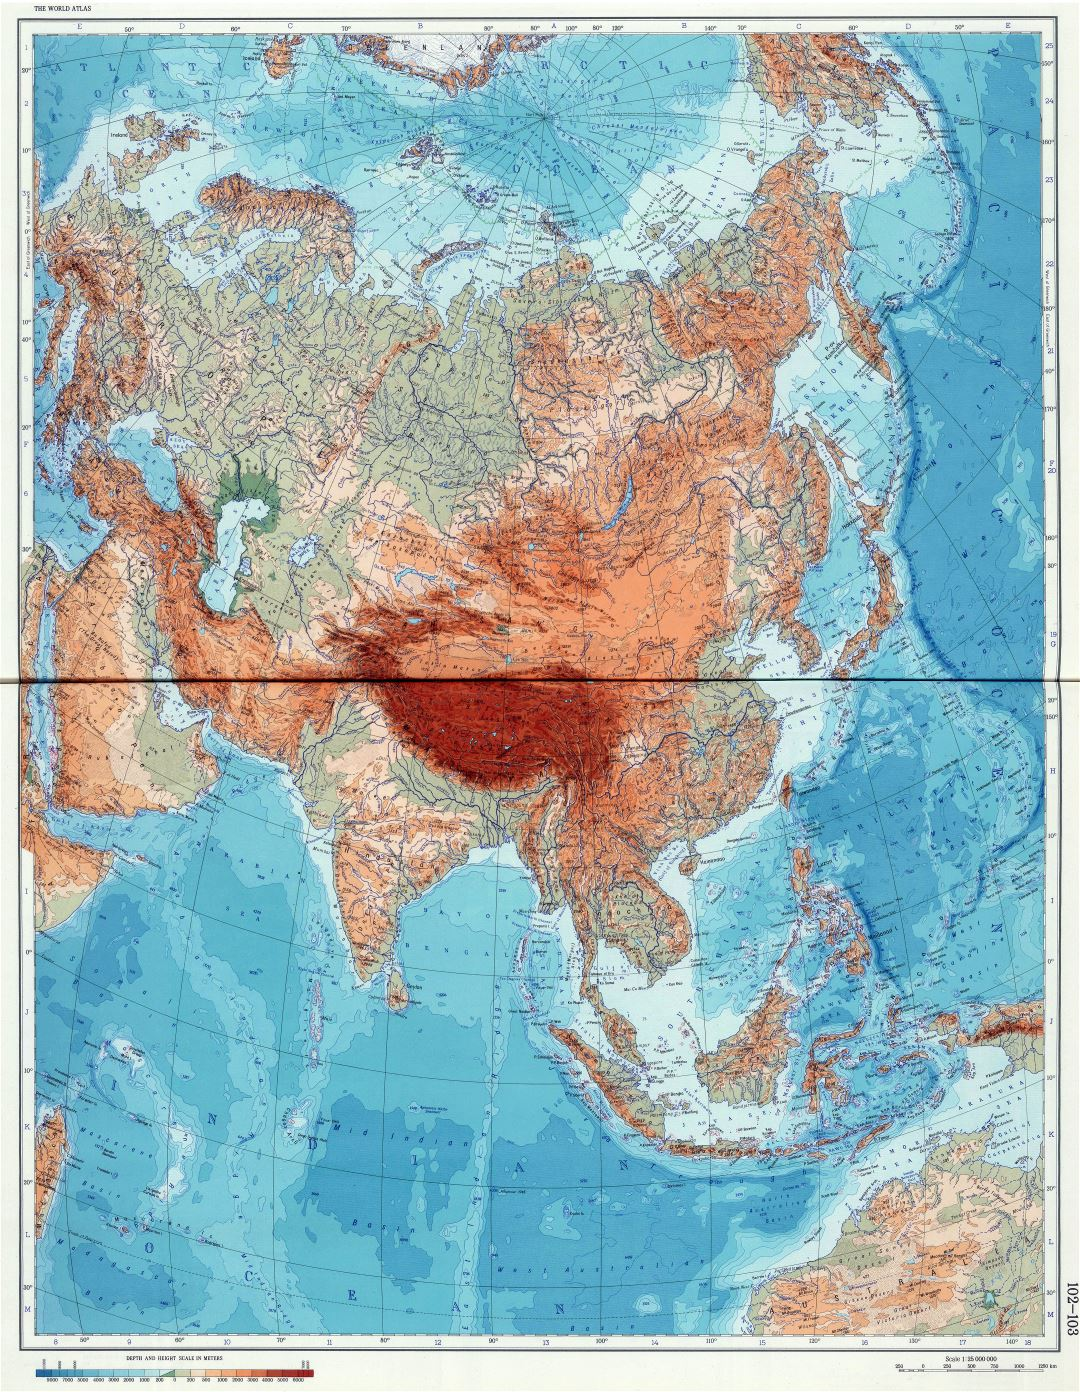 Large scale detailed physical (geographical) map of Eurasia